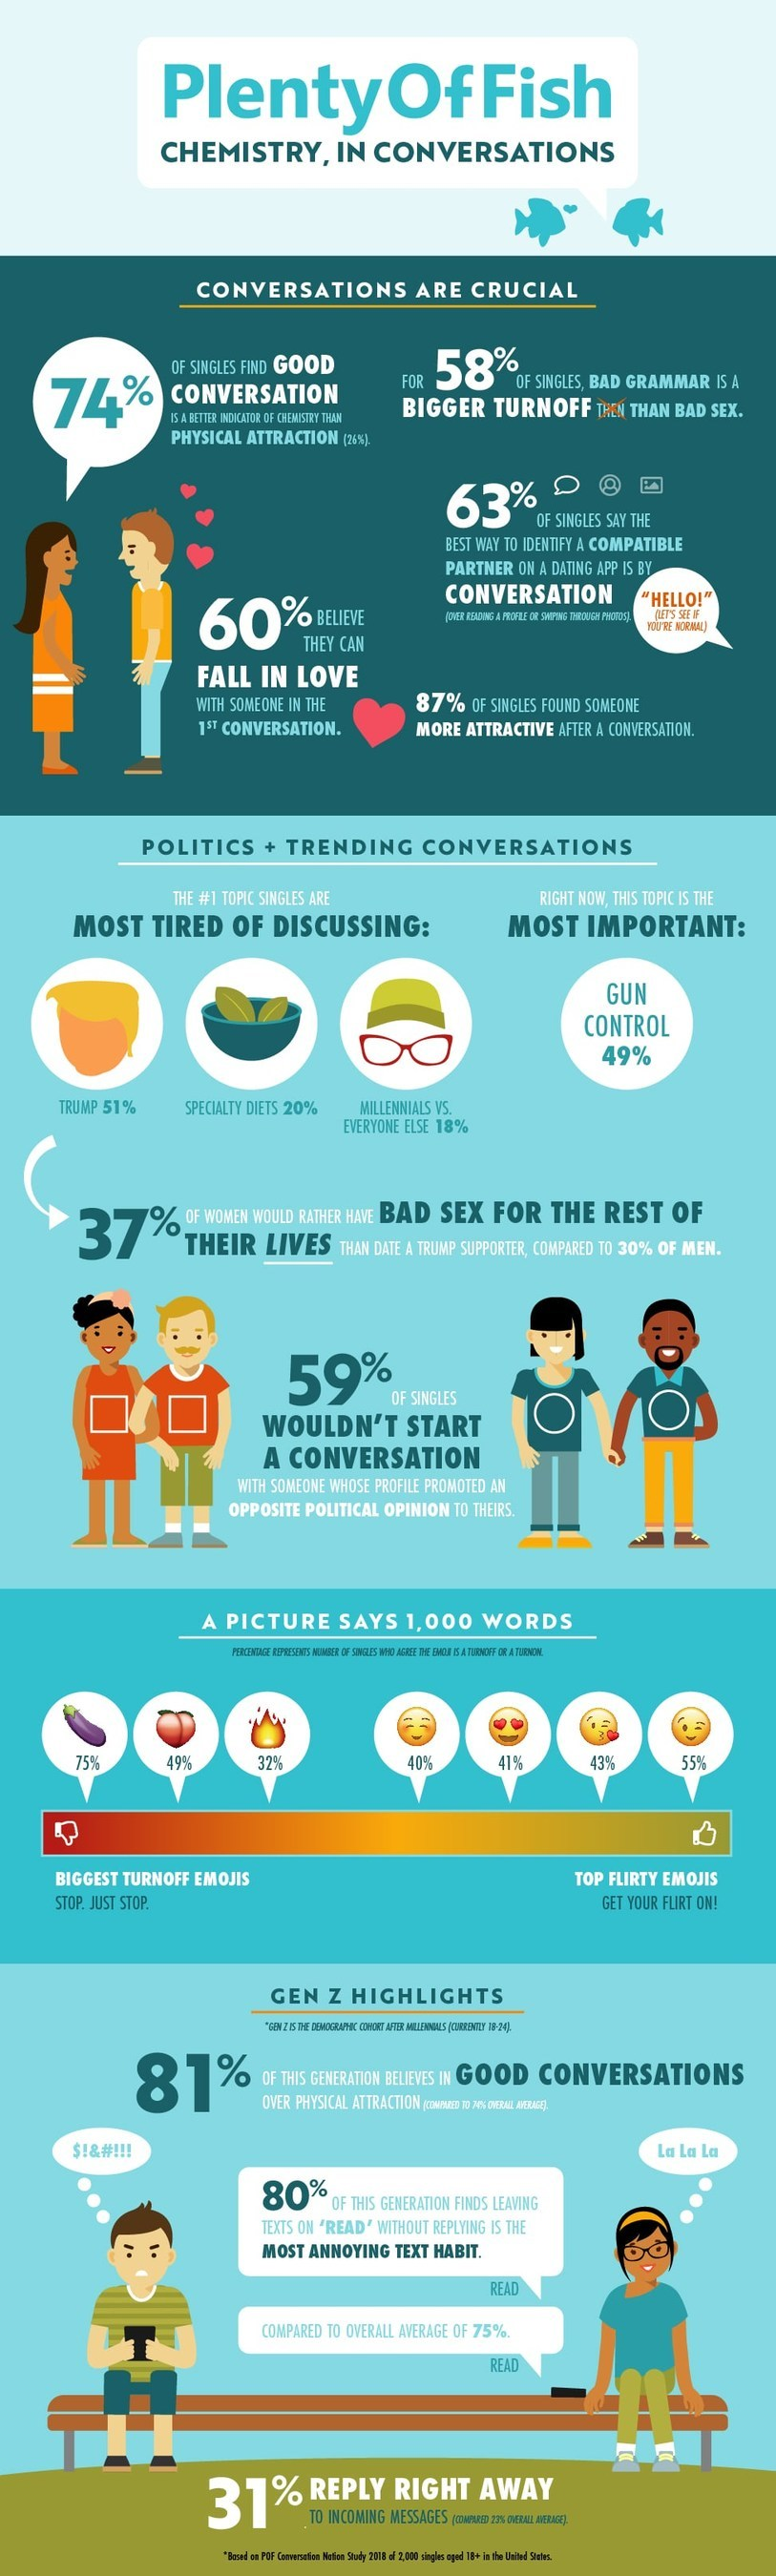 New Study Reveals Great Conversation & Grammar Are The